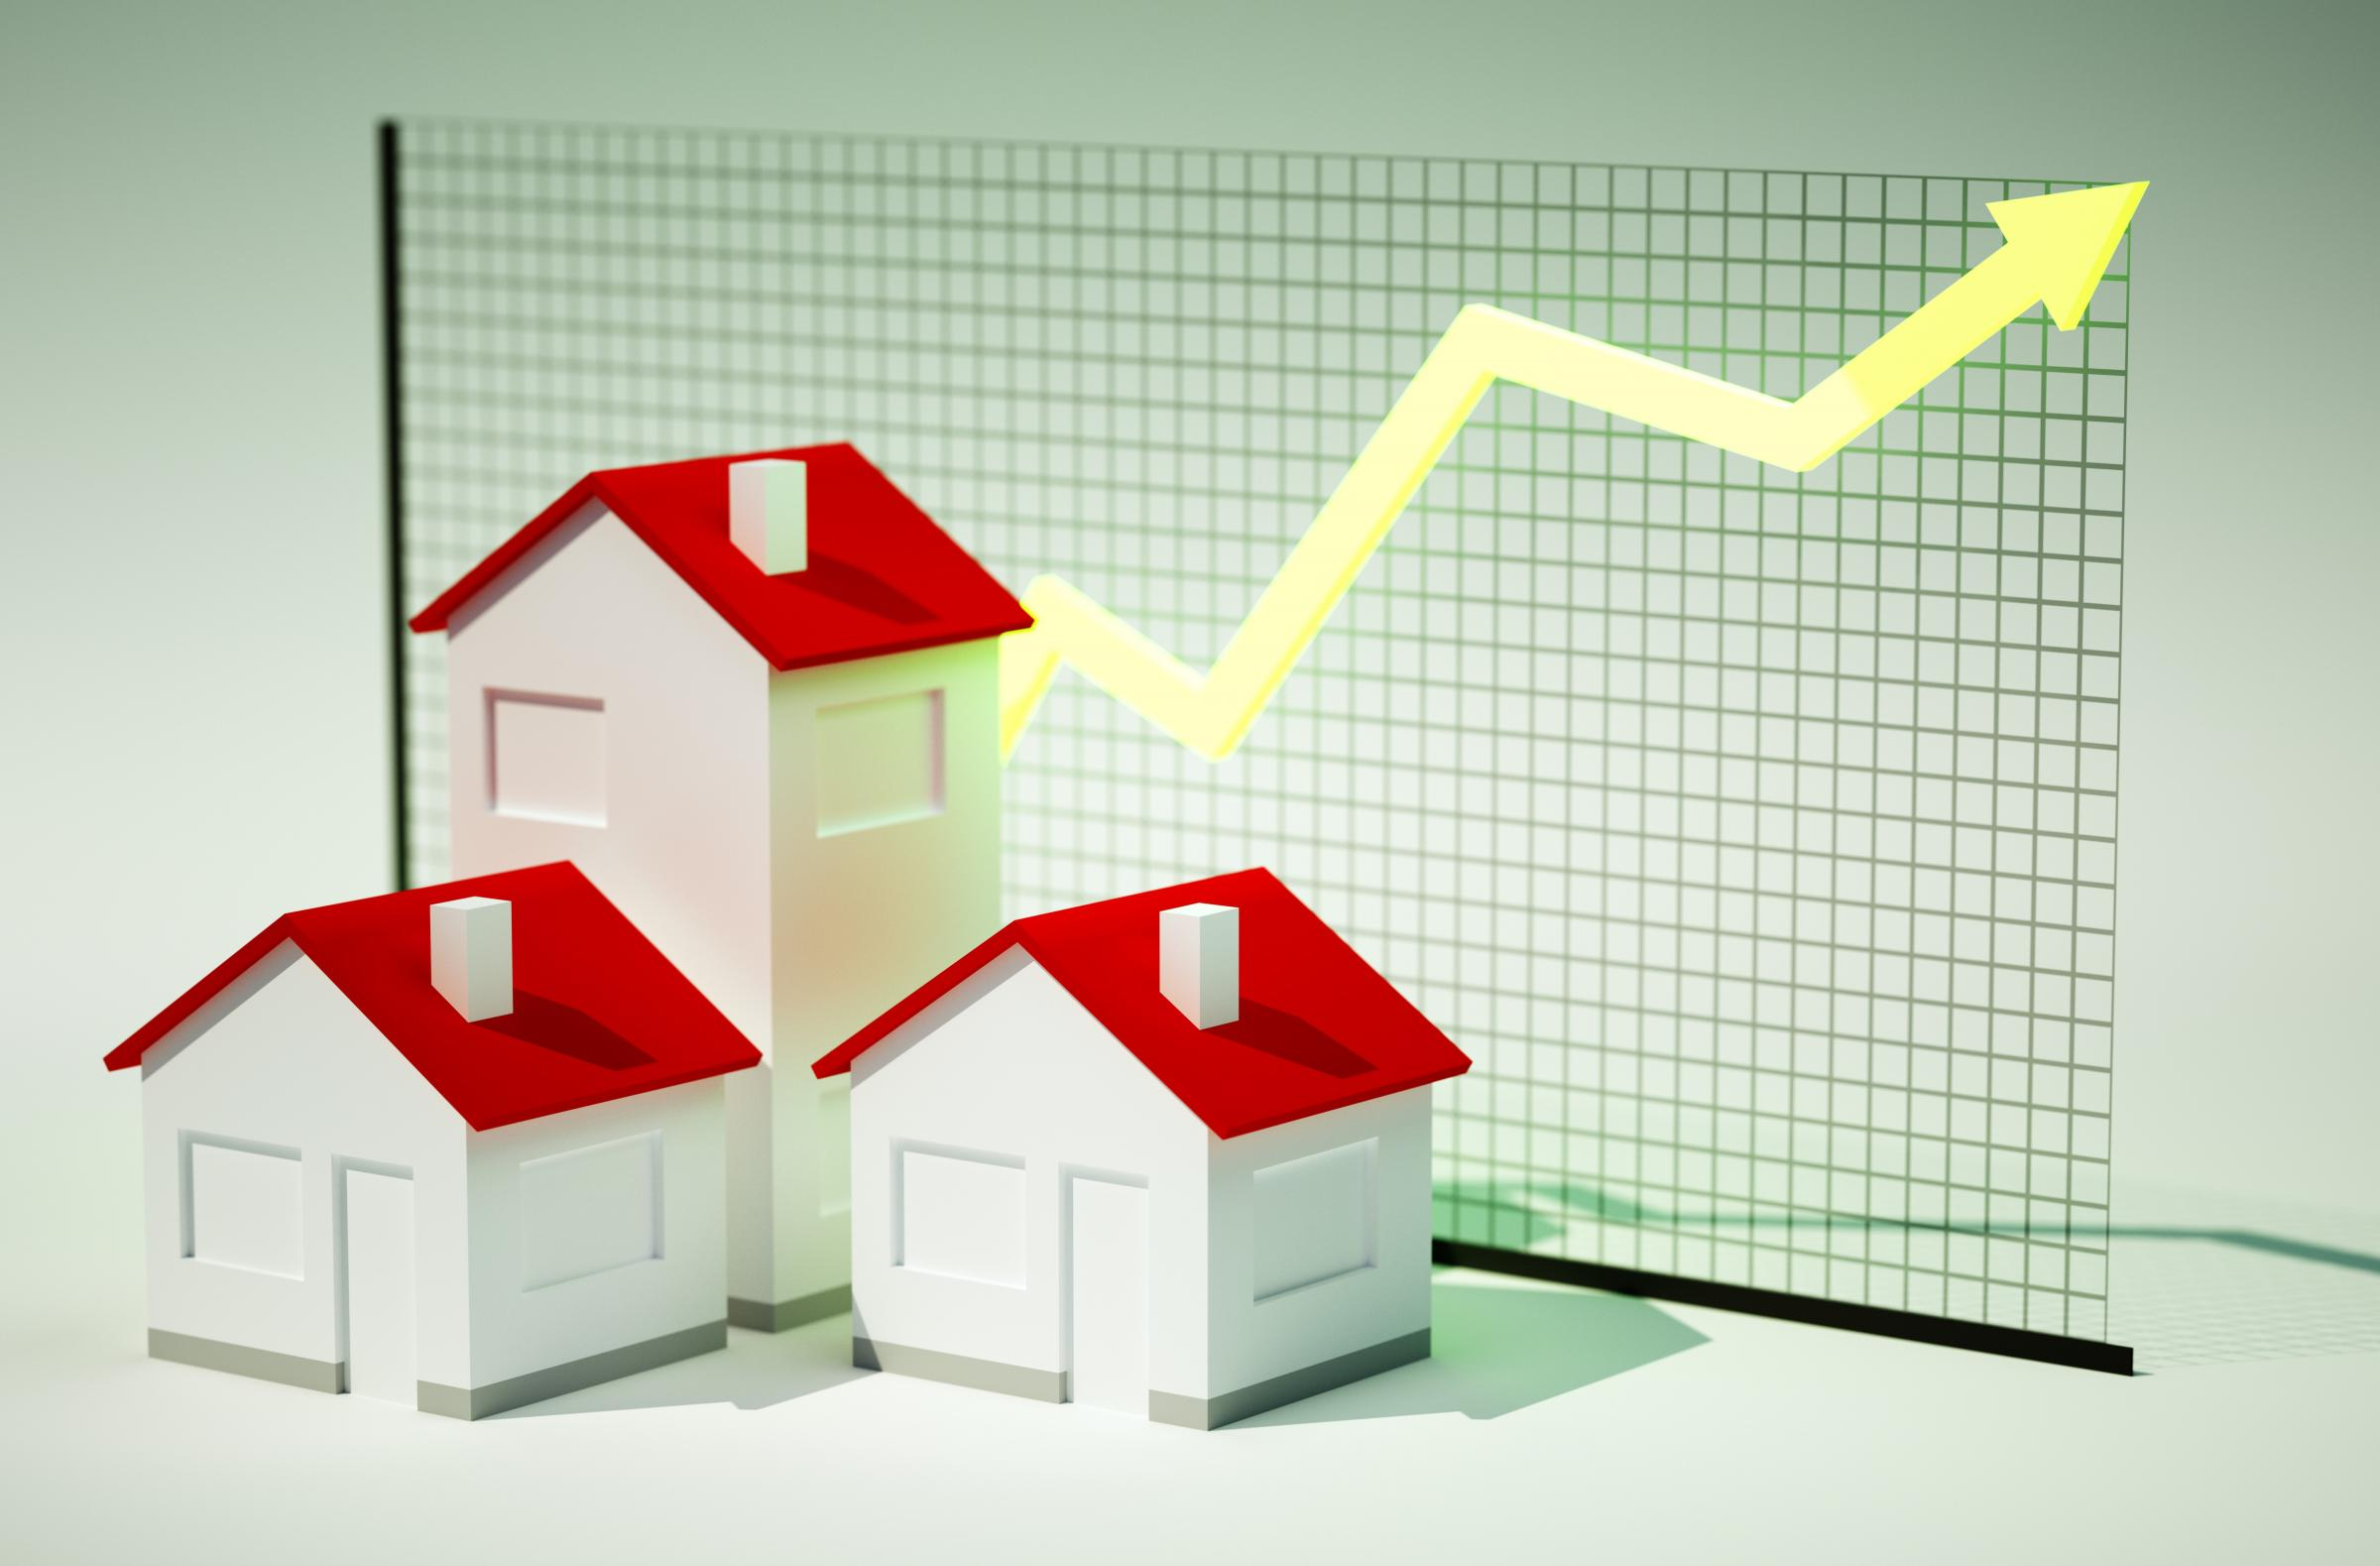 Property News: Levels of people in mortgage arrears reaches a record low